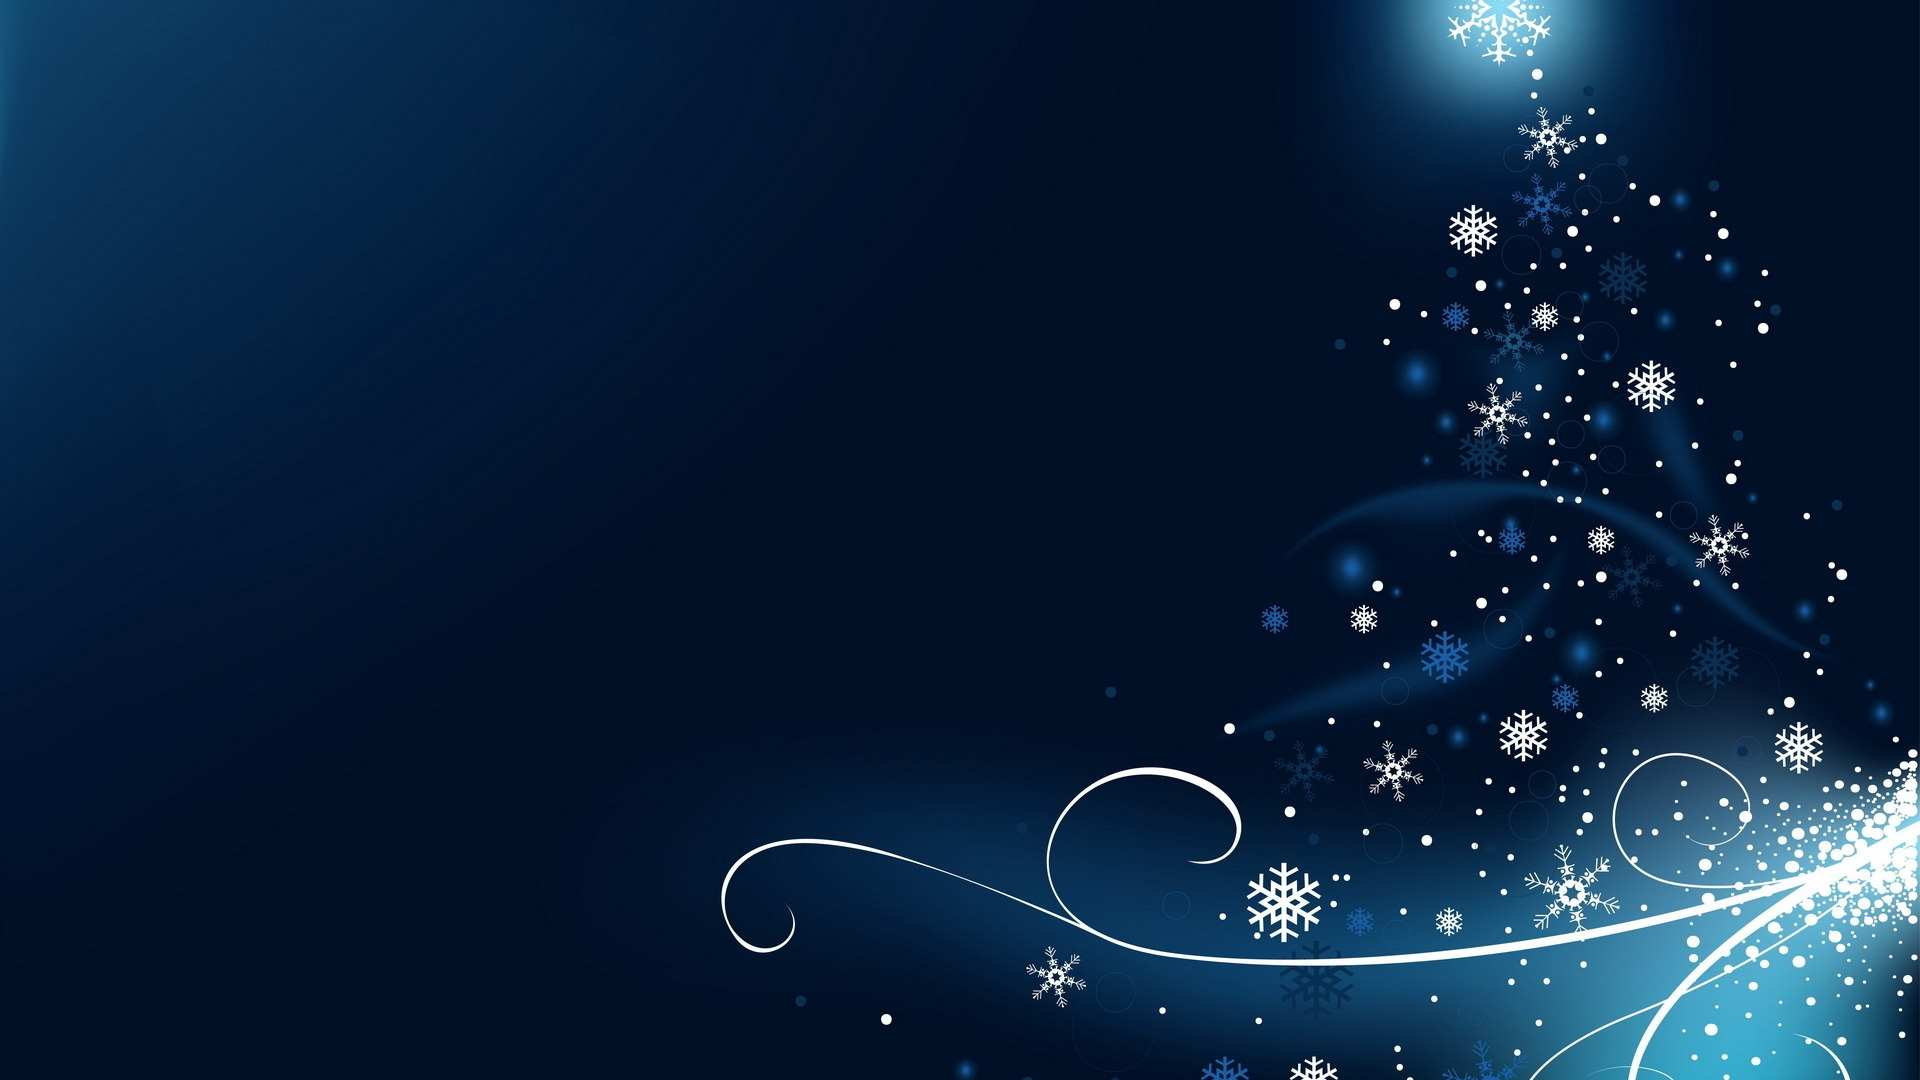 snowflake tree wallpaper 49059